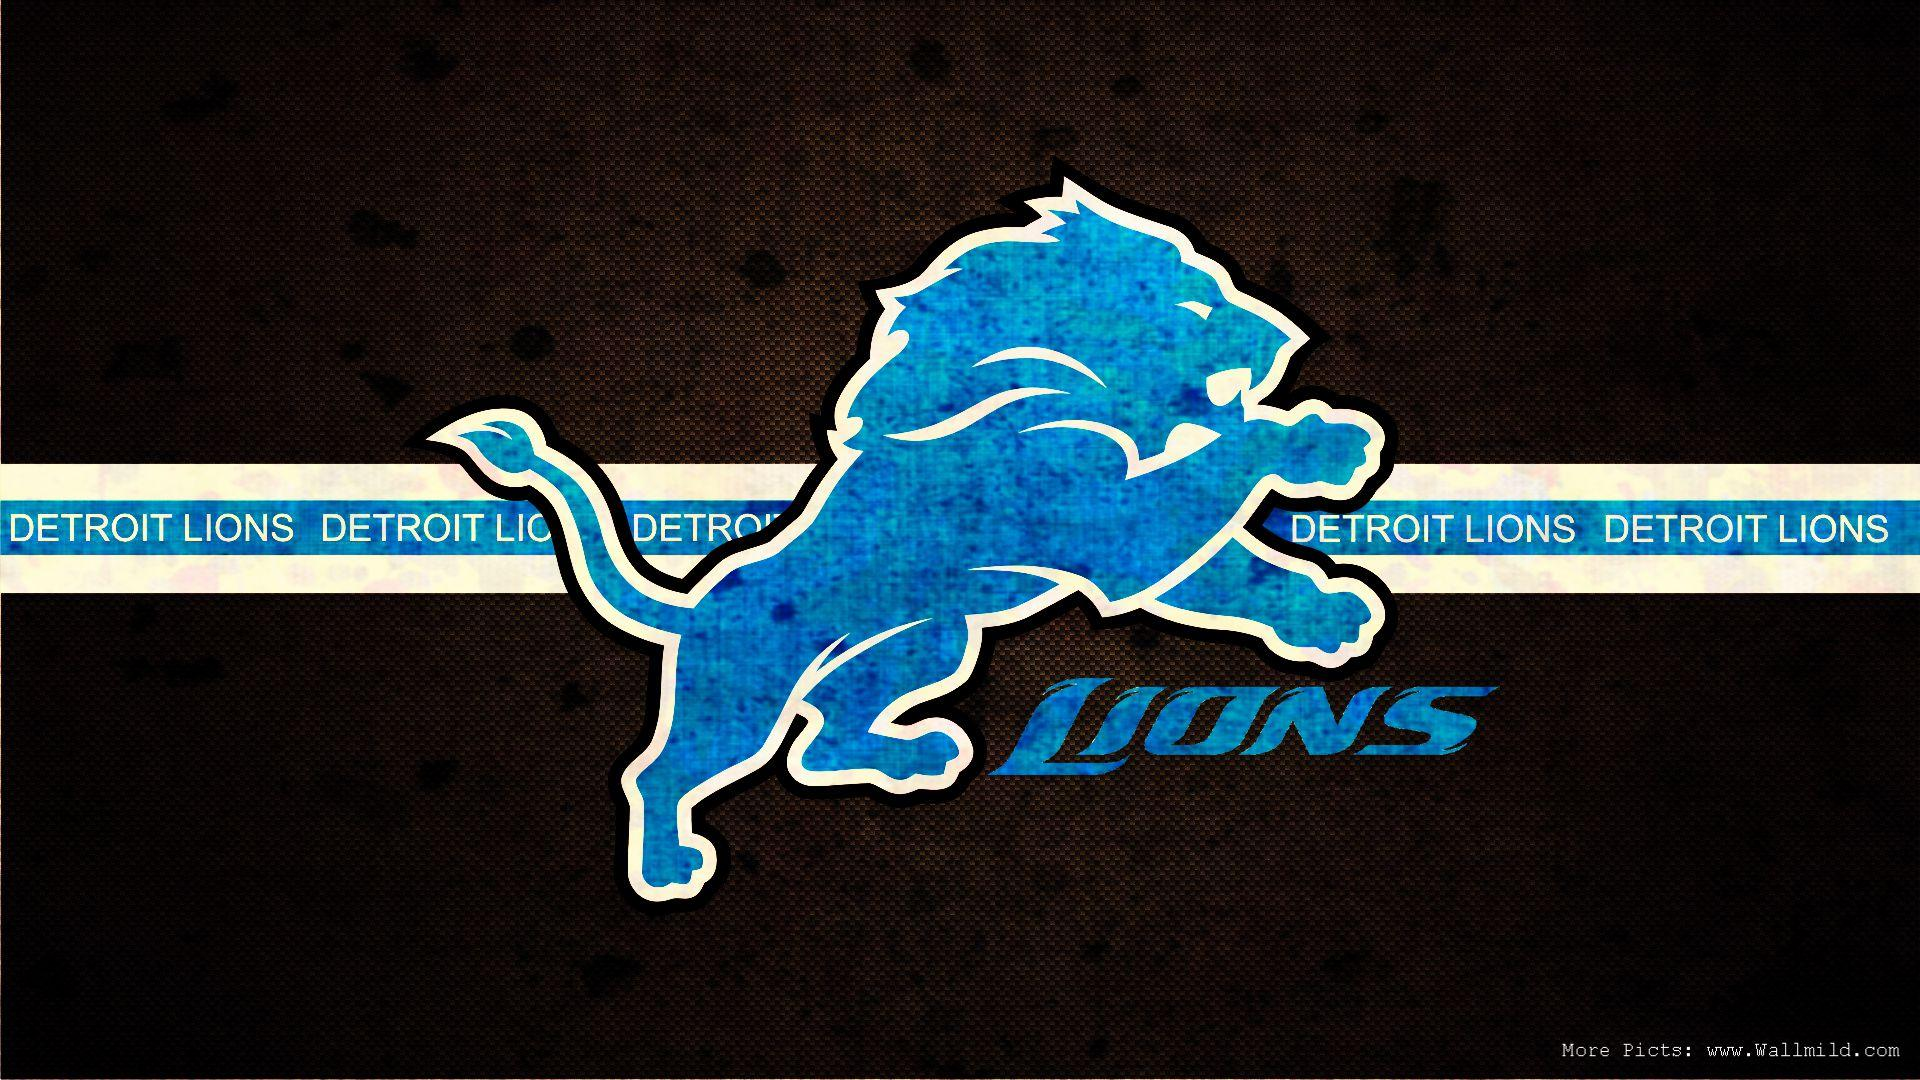 The Lions Den: Too Close For Comfort